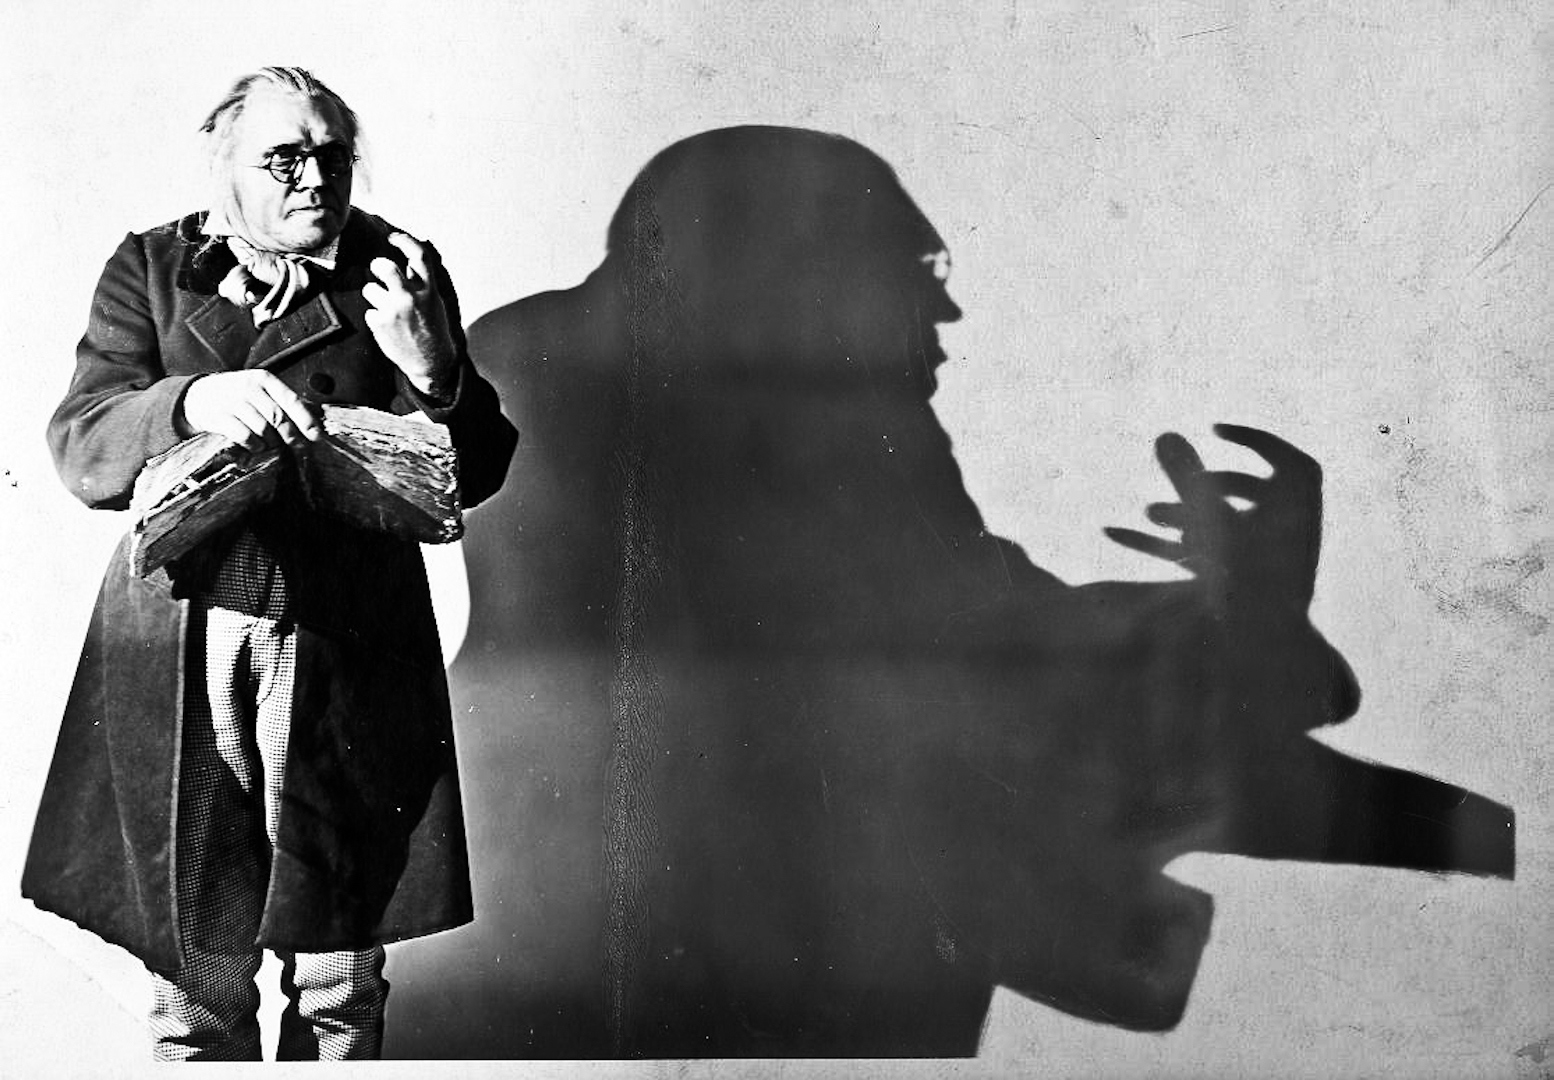 Documentaire Dr Caligari ou l'invention du film d'horreur